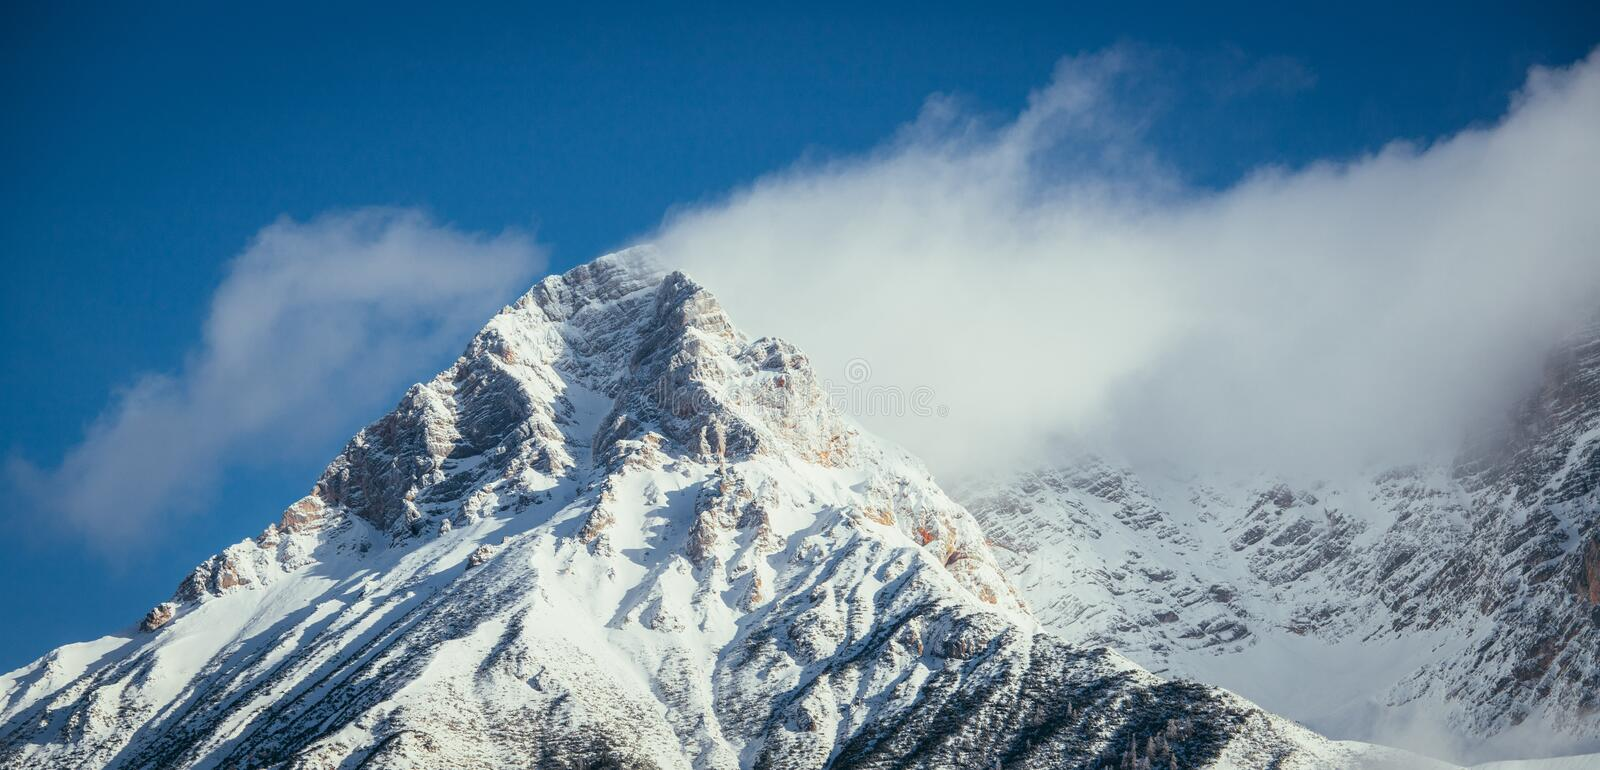 Epic snowy mountain peak with clouds in winter, landscape, alps, austria. Lpeak cliffy adventure rock misty clear solid stone cliffhanger beautiful scenery stock image